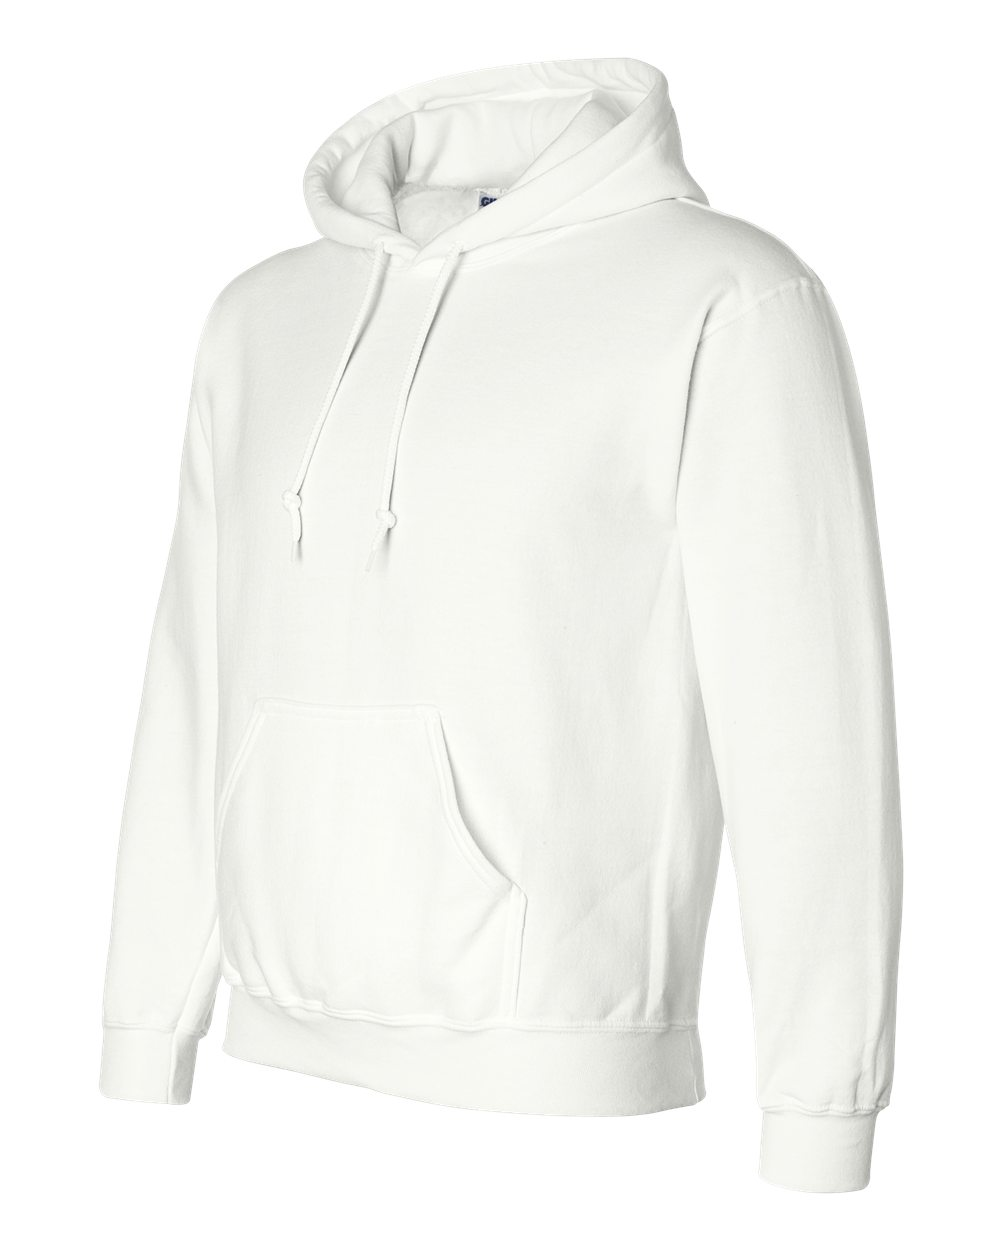 Gildan Ultra Blend Hooded sweater GIL12500 White